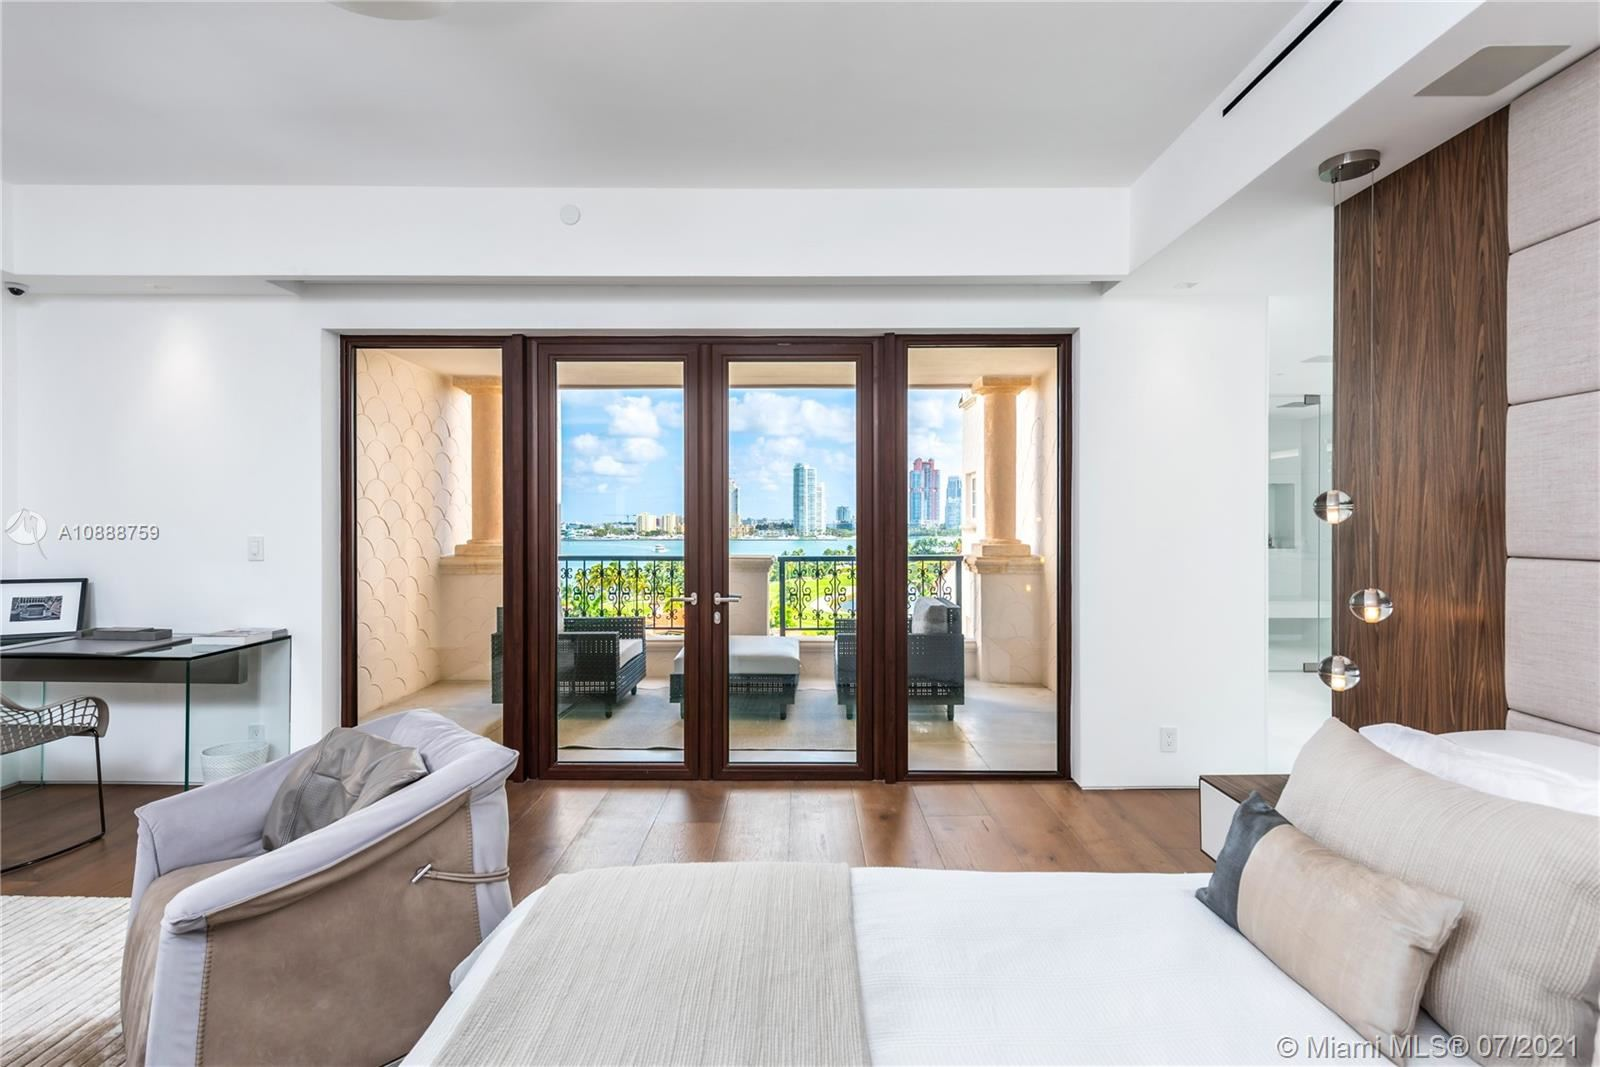 Photo 35 of Listing MLS a10888759 in 5282 Fisher Island Dr #5282 Miami FL 33109